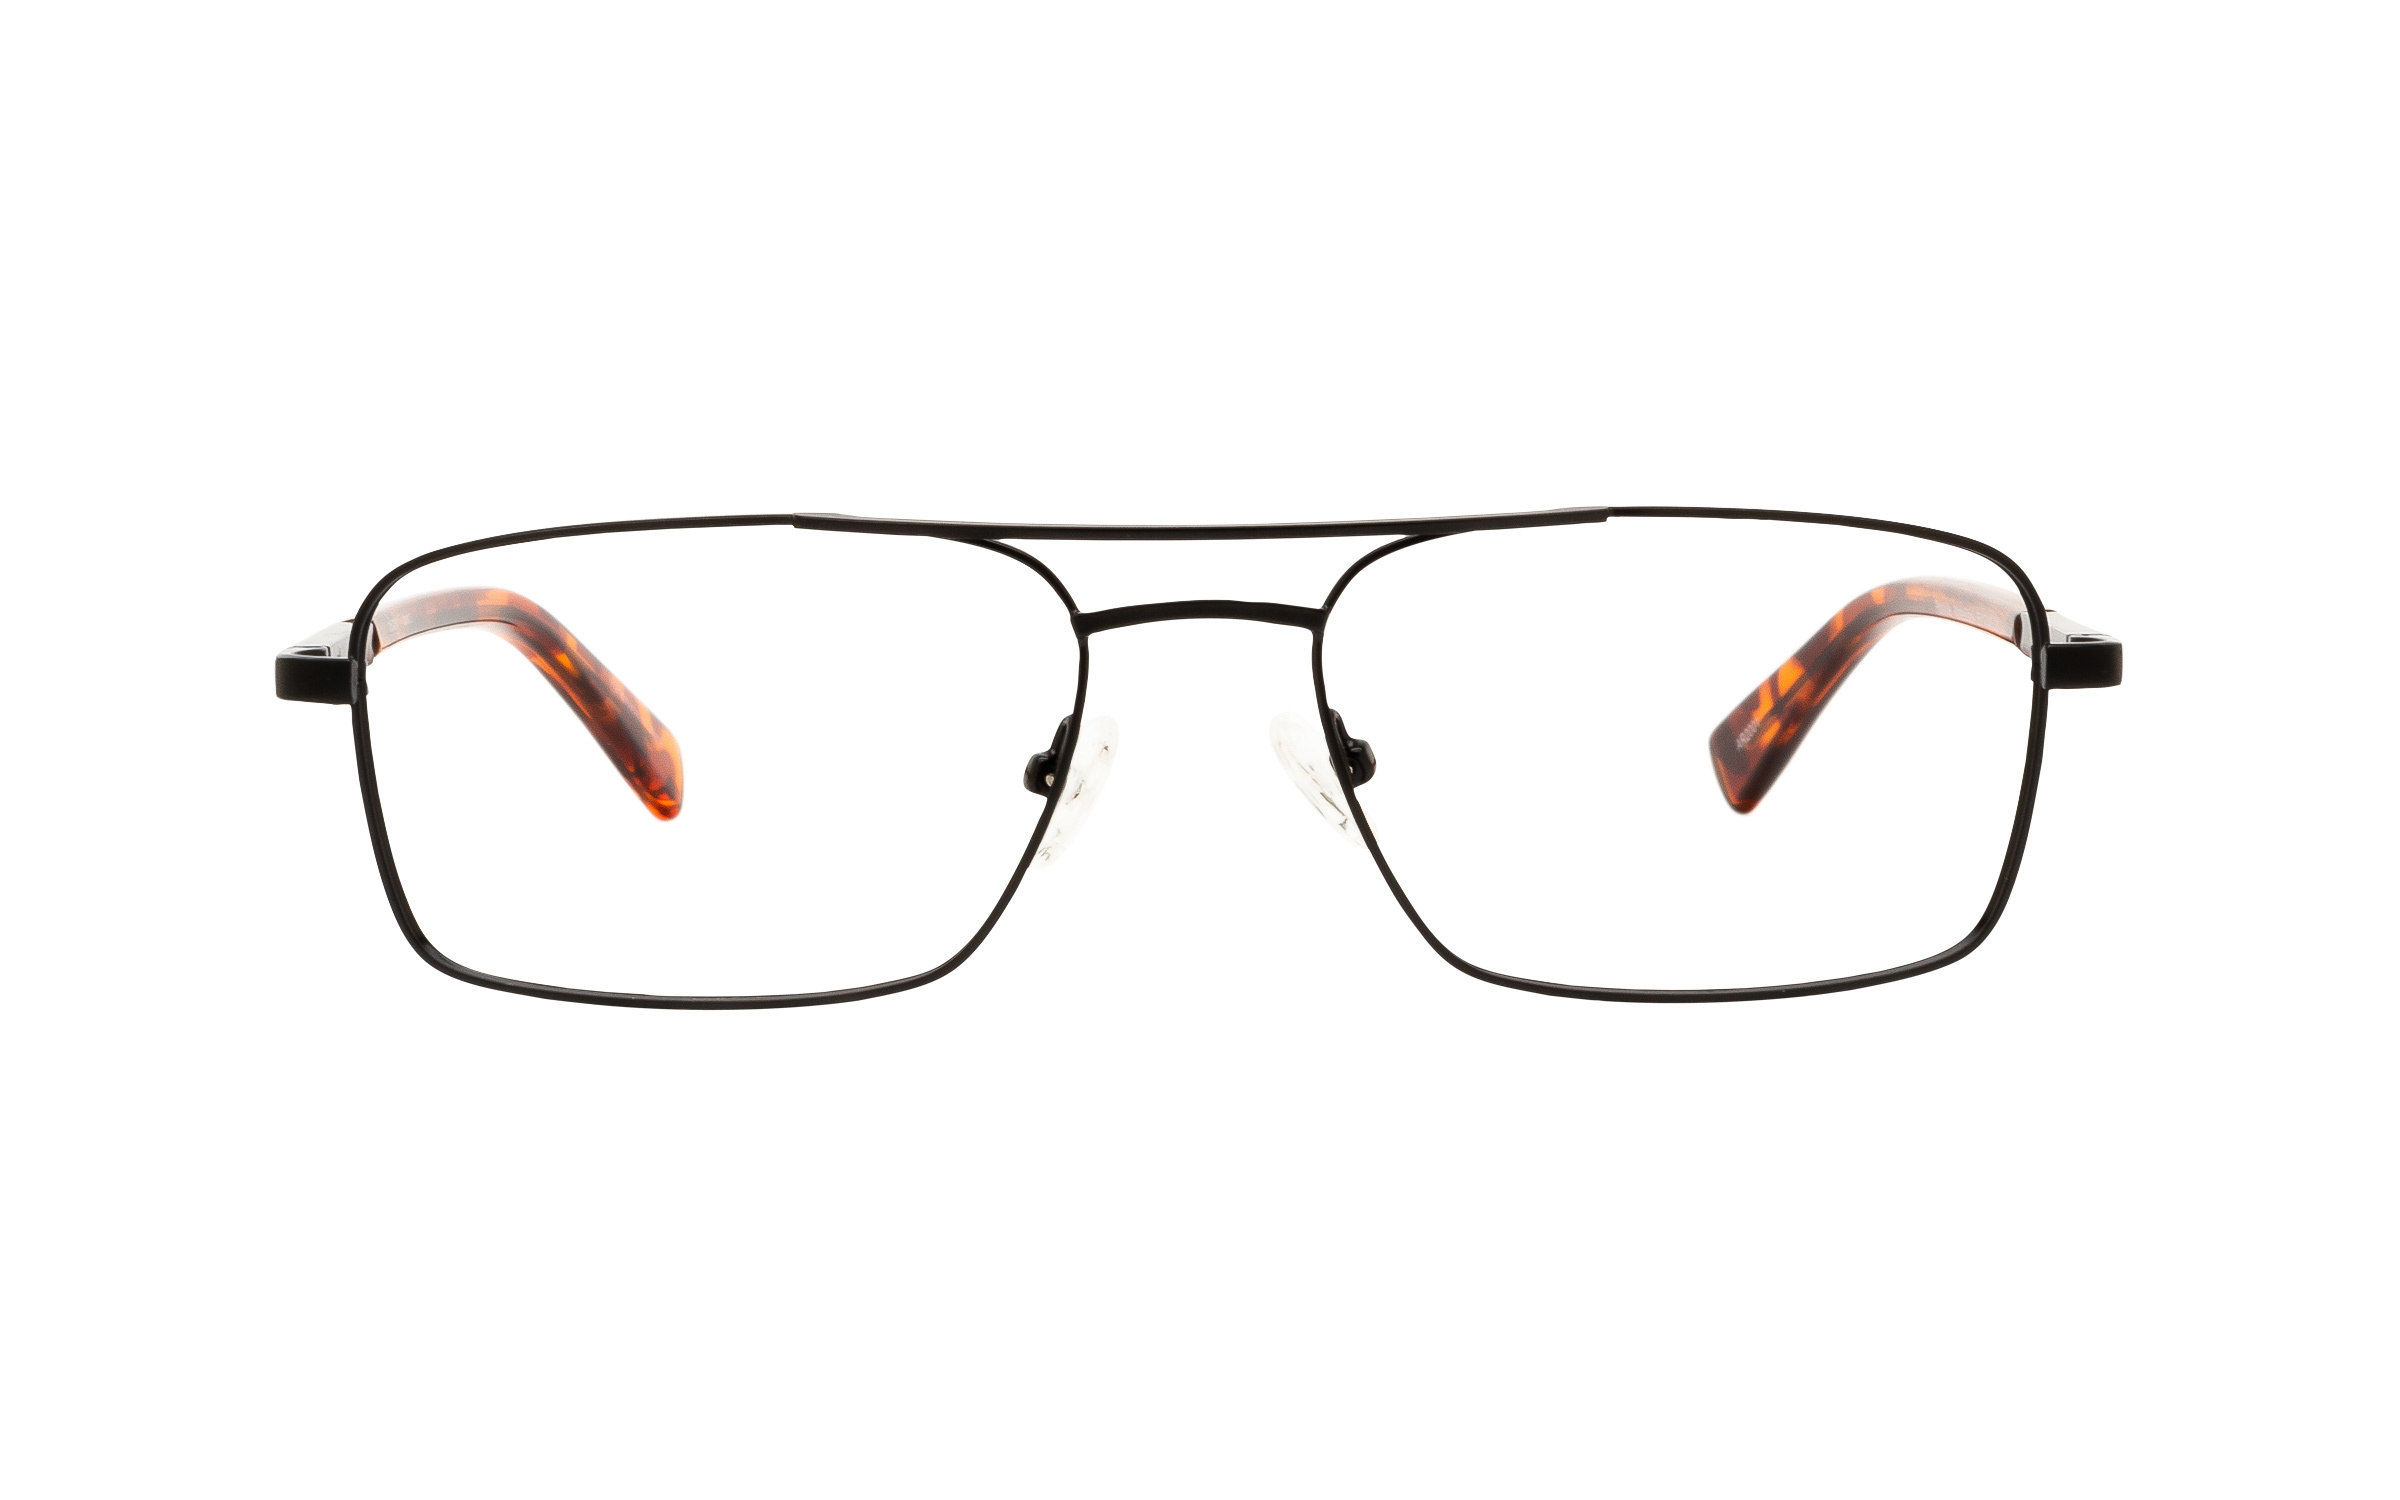 http://www.coastal.com/ - Clearly Basics Postville CLS062 C01 (55) Eyeglasses and Frame in Matte Black – Online Coastal